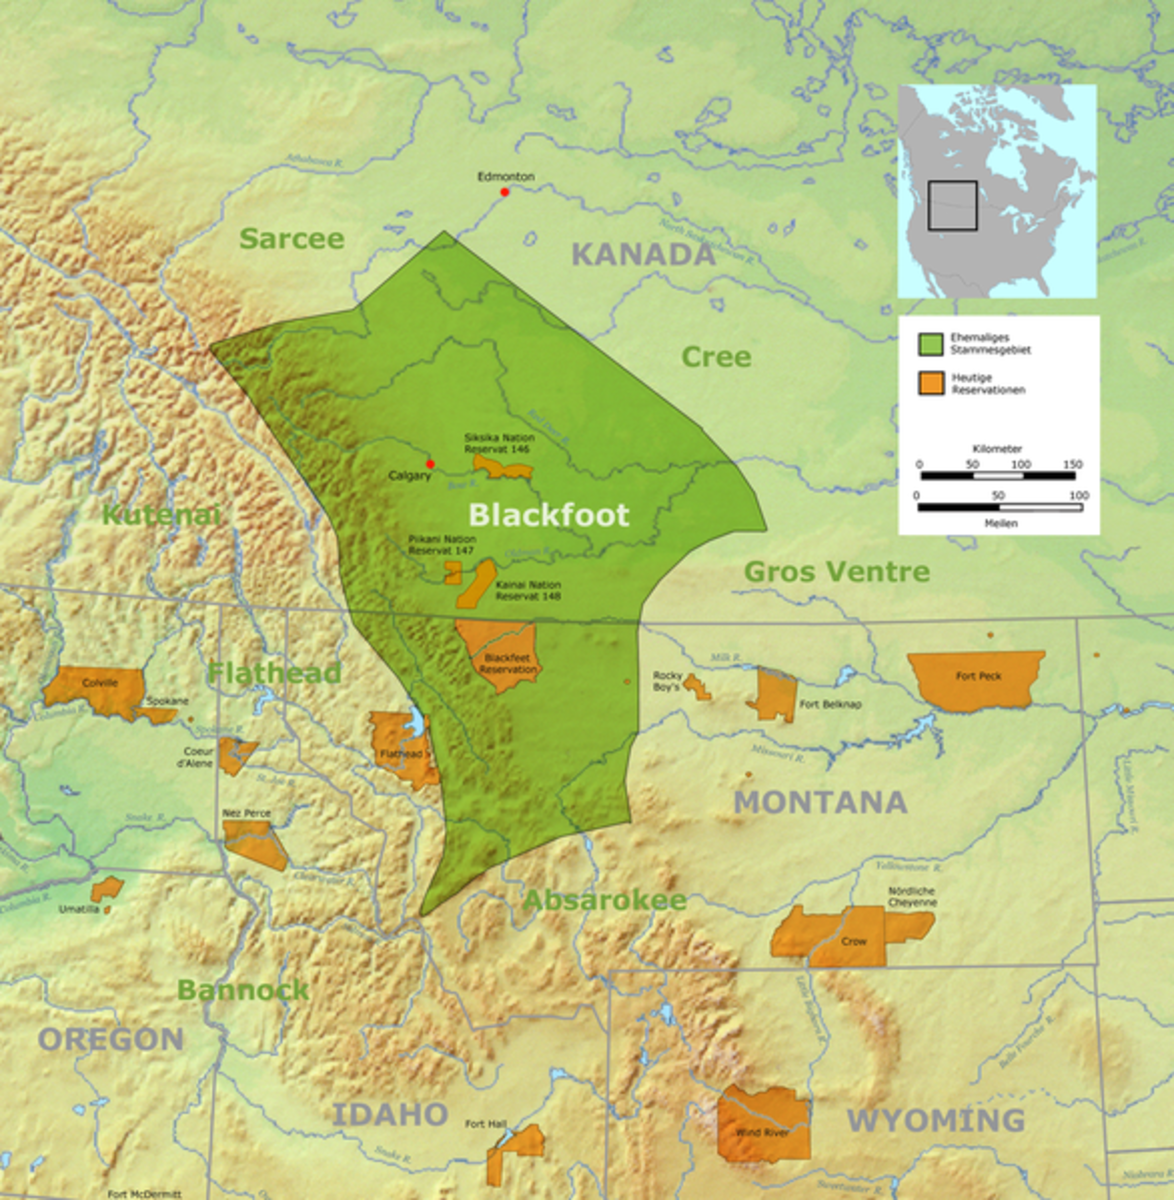 Blackfeet or Blackfoot Nation in USA and Canada.